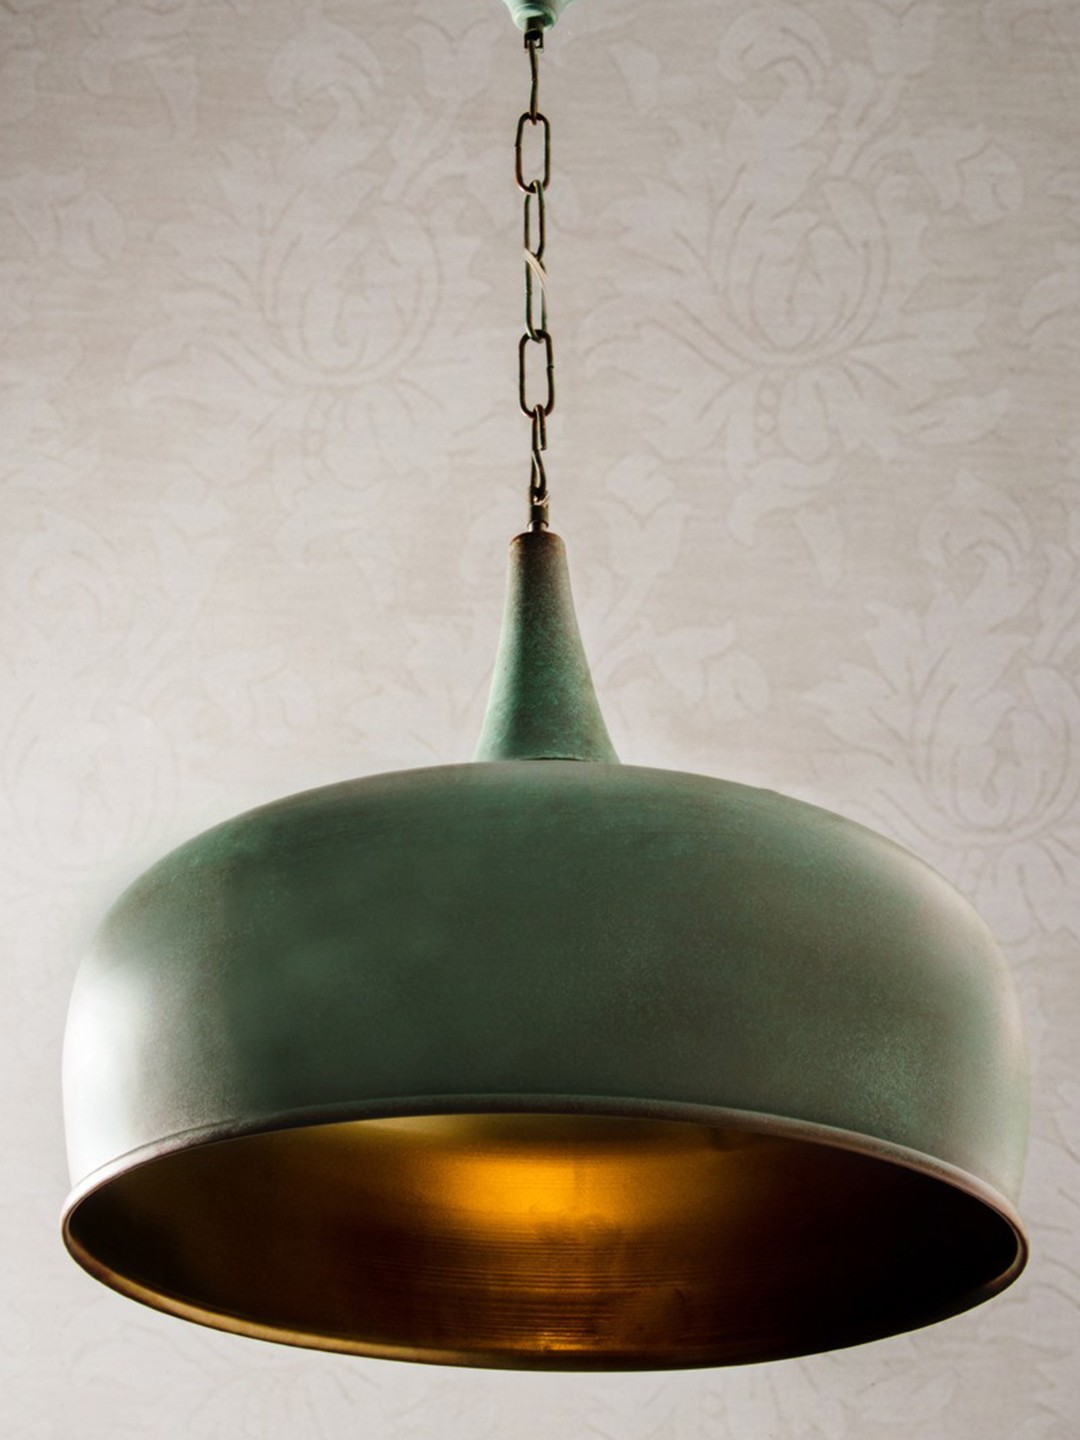 Patina Onion Dome Hanging Light